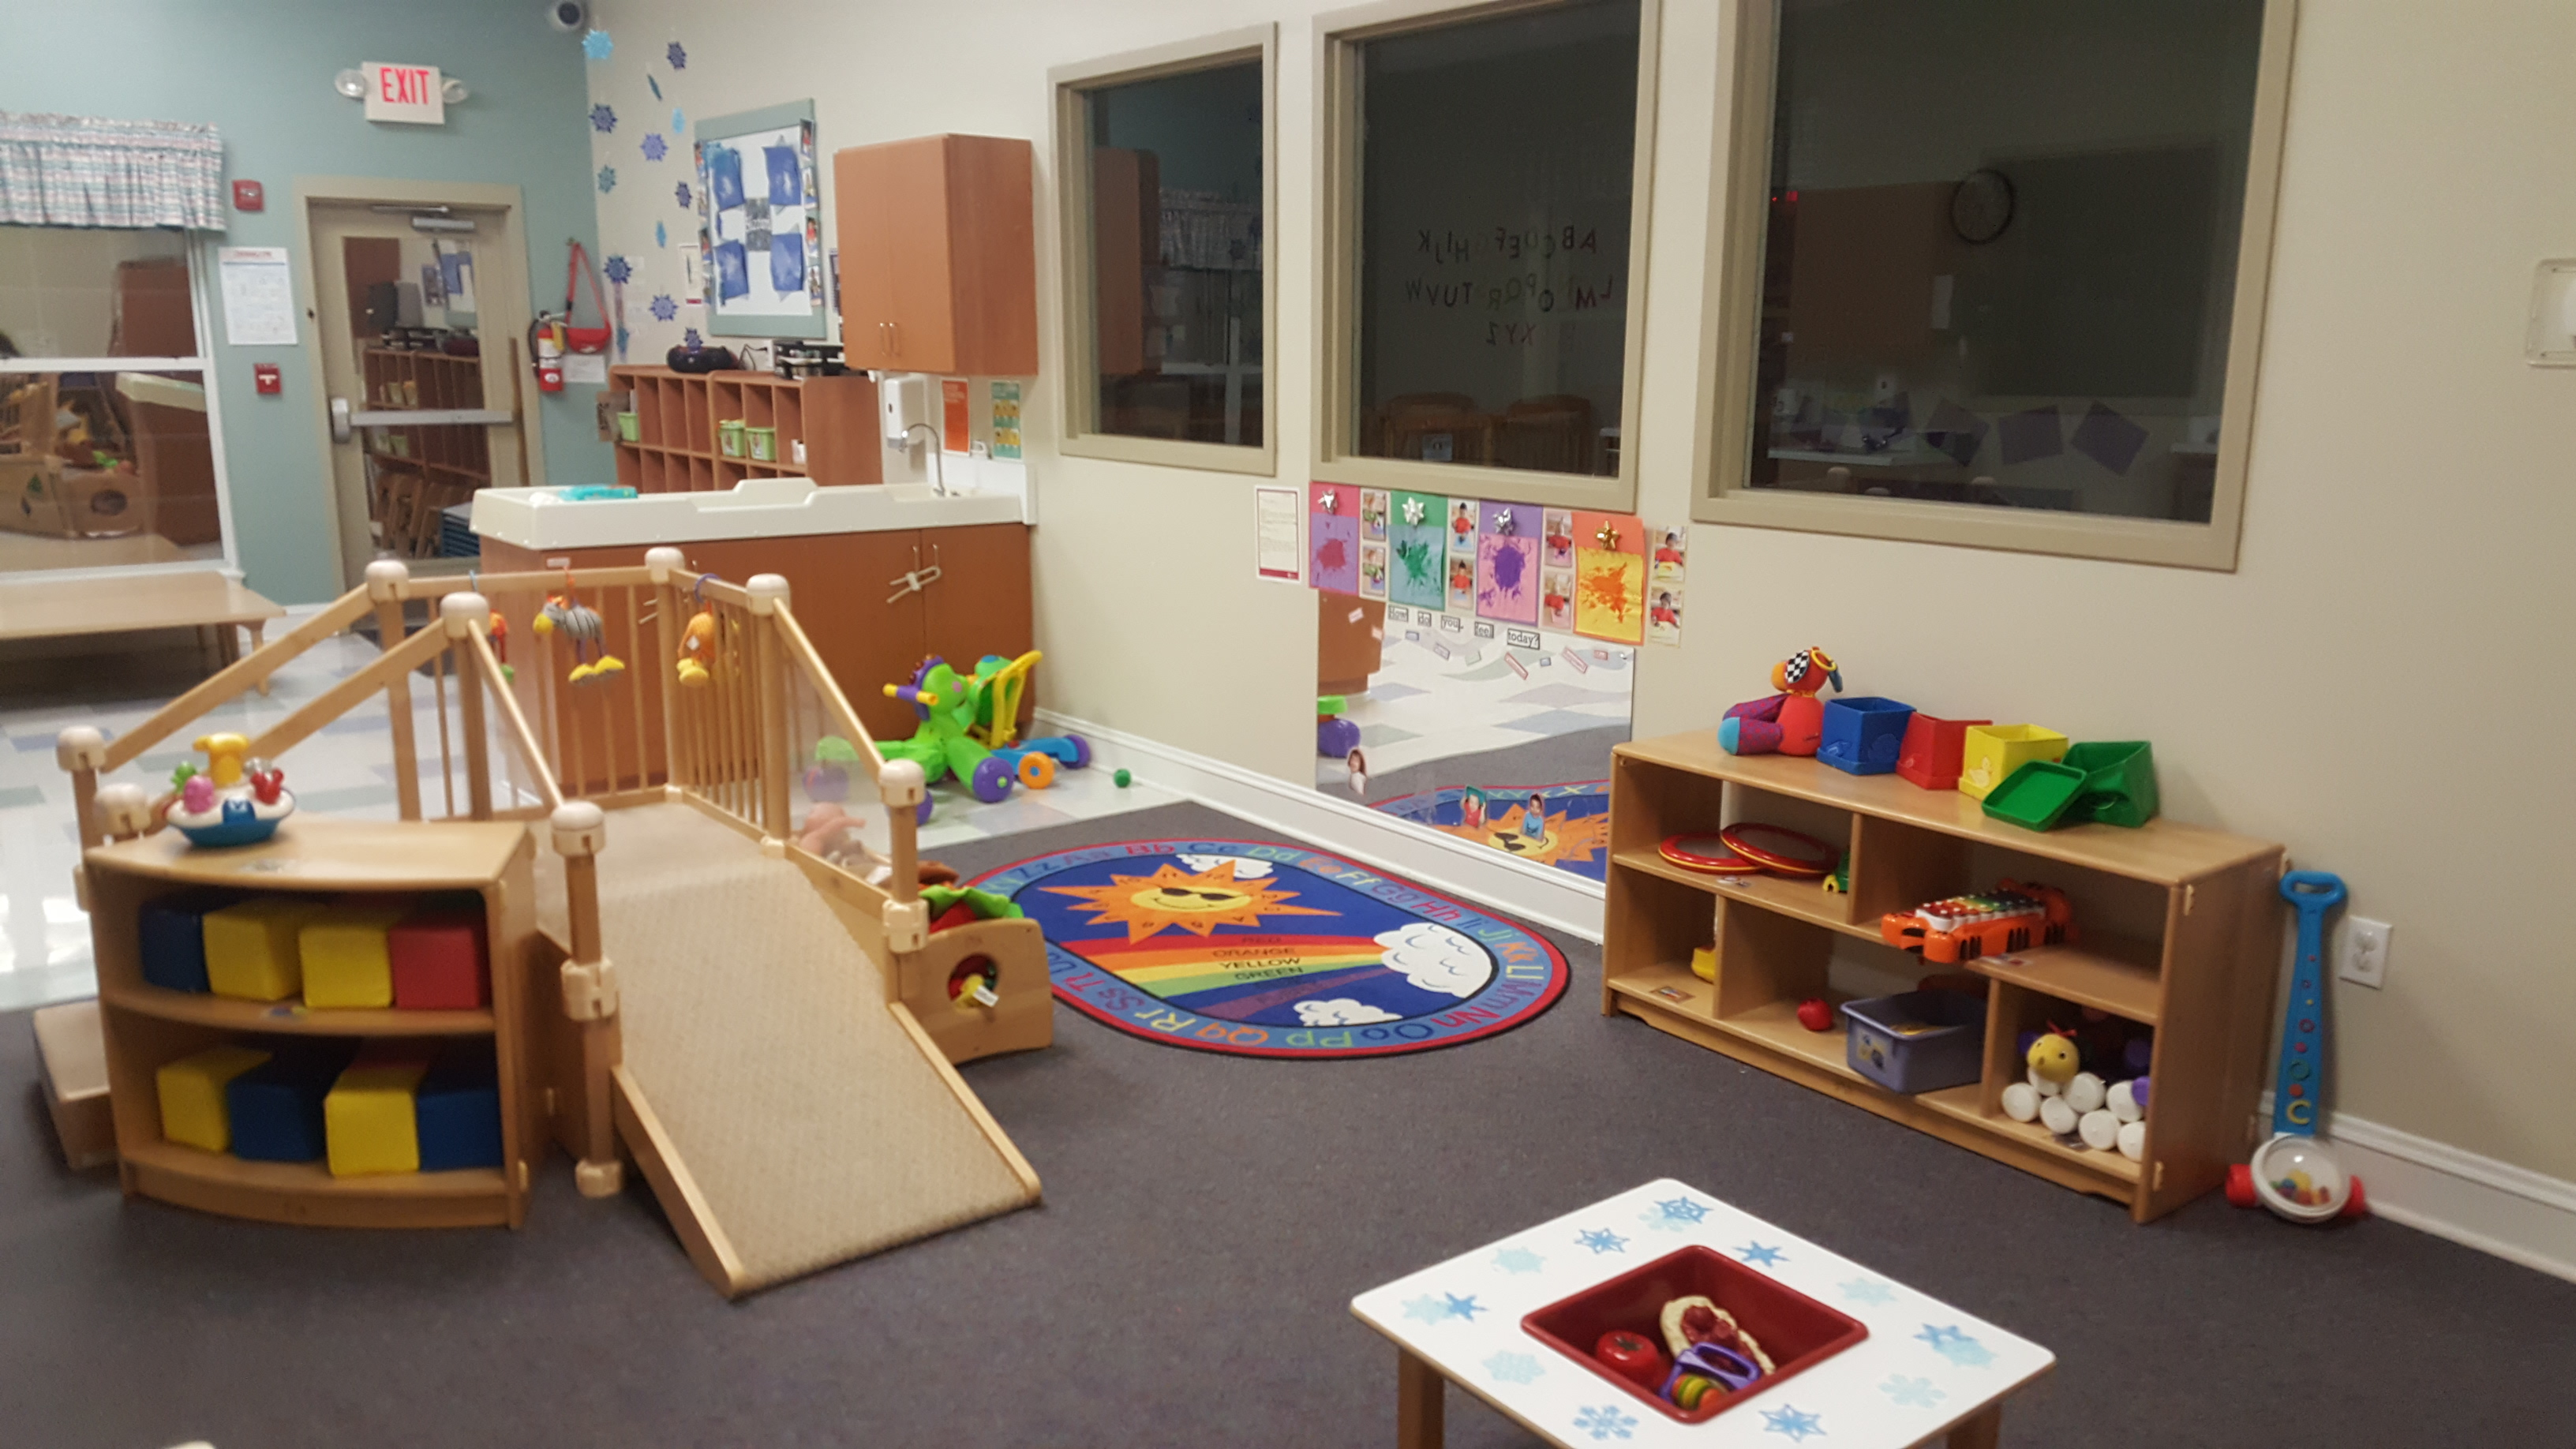 This is our Infant C classroom for older infants. (12-16 months)